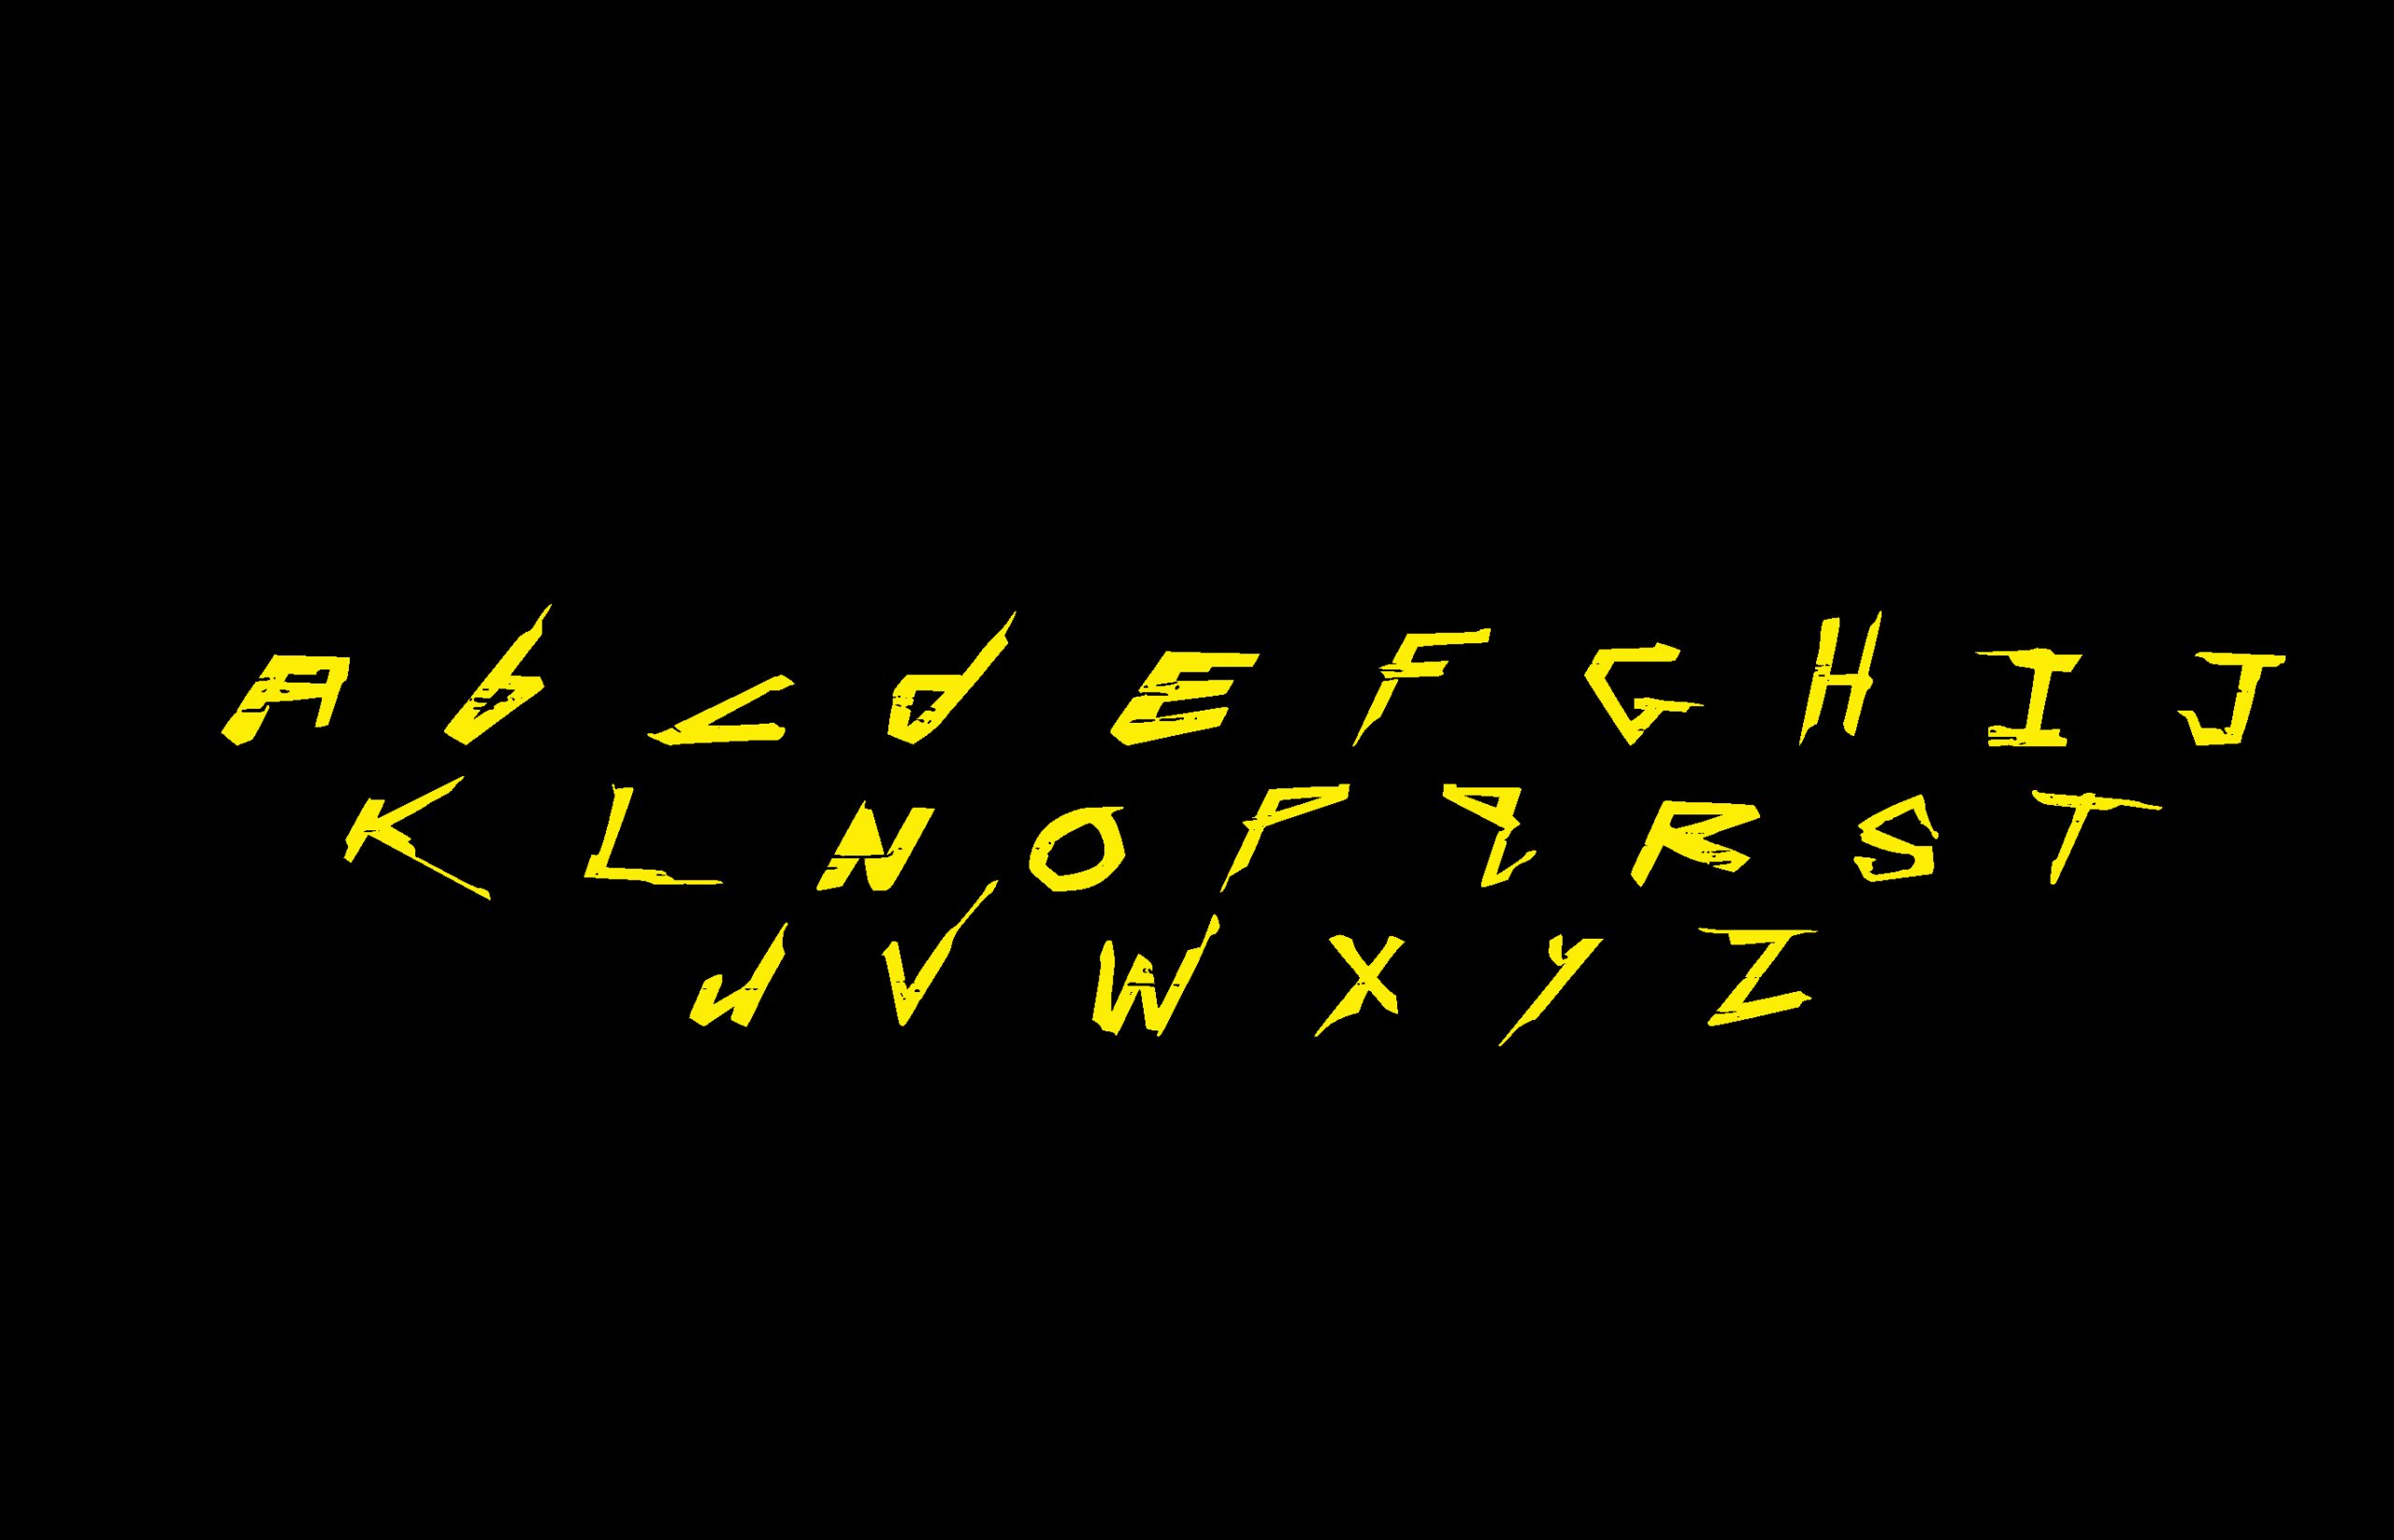 Cyberpunk 2077 Free Font - decorative-display